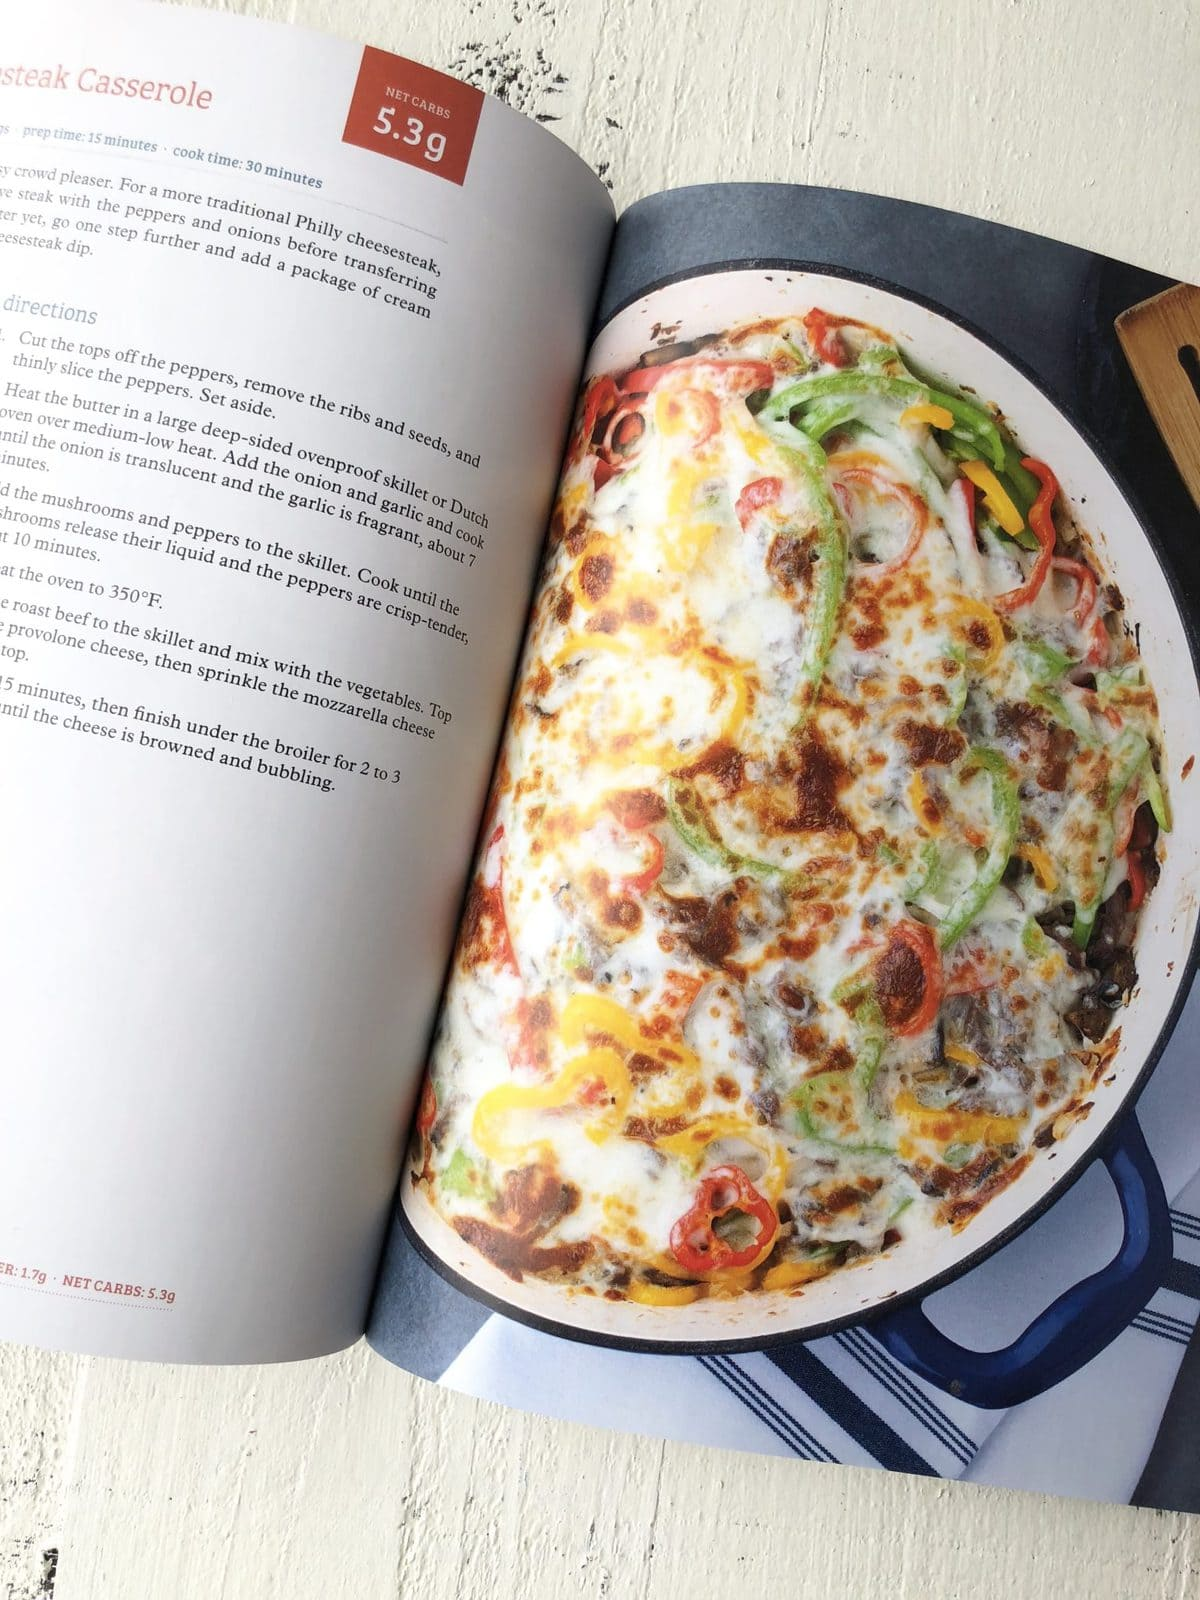 Craveable Keto Cookbook By Kyndra D. Holley